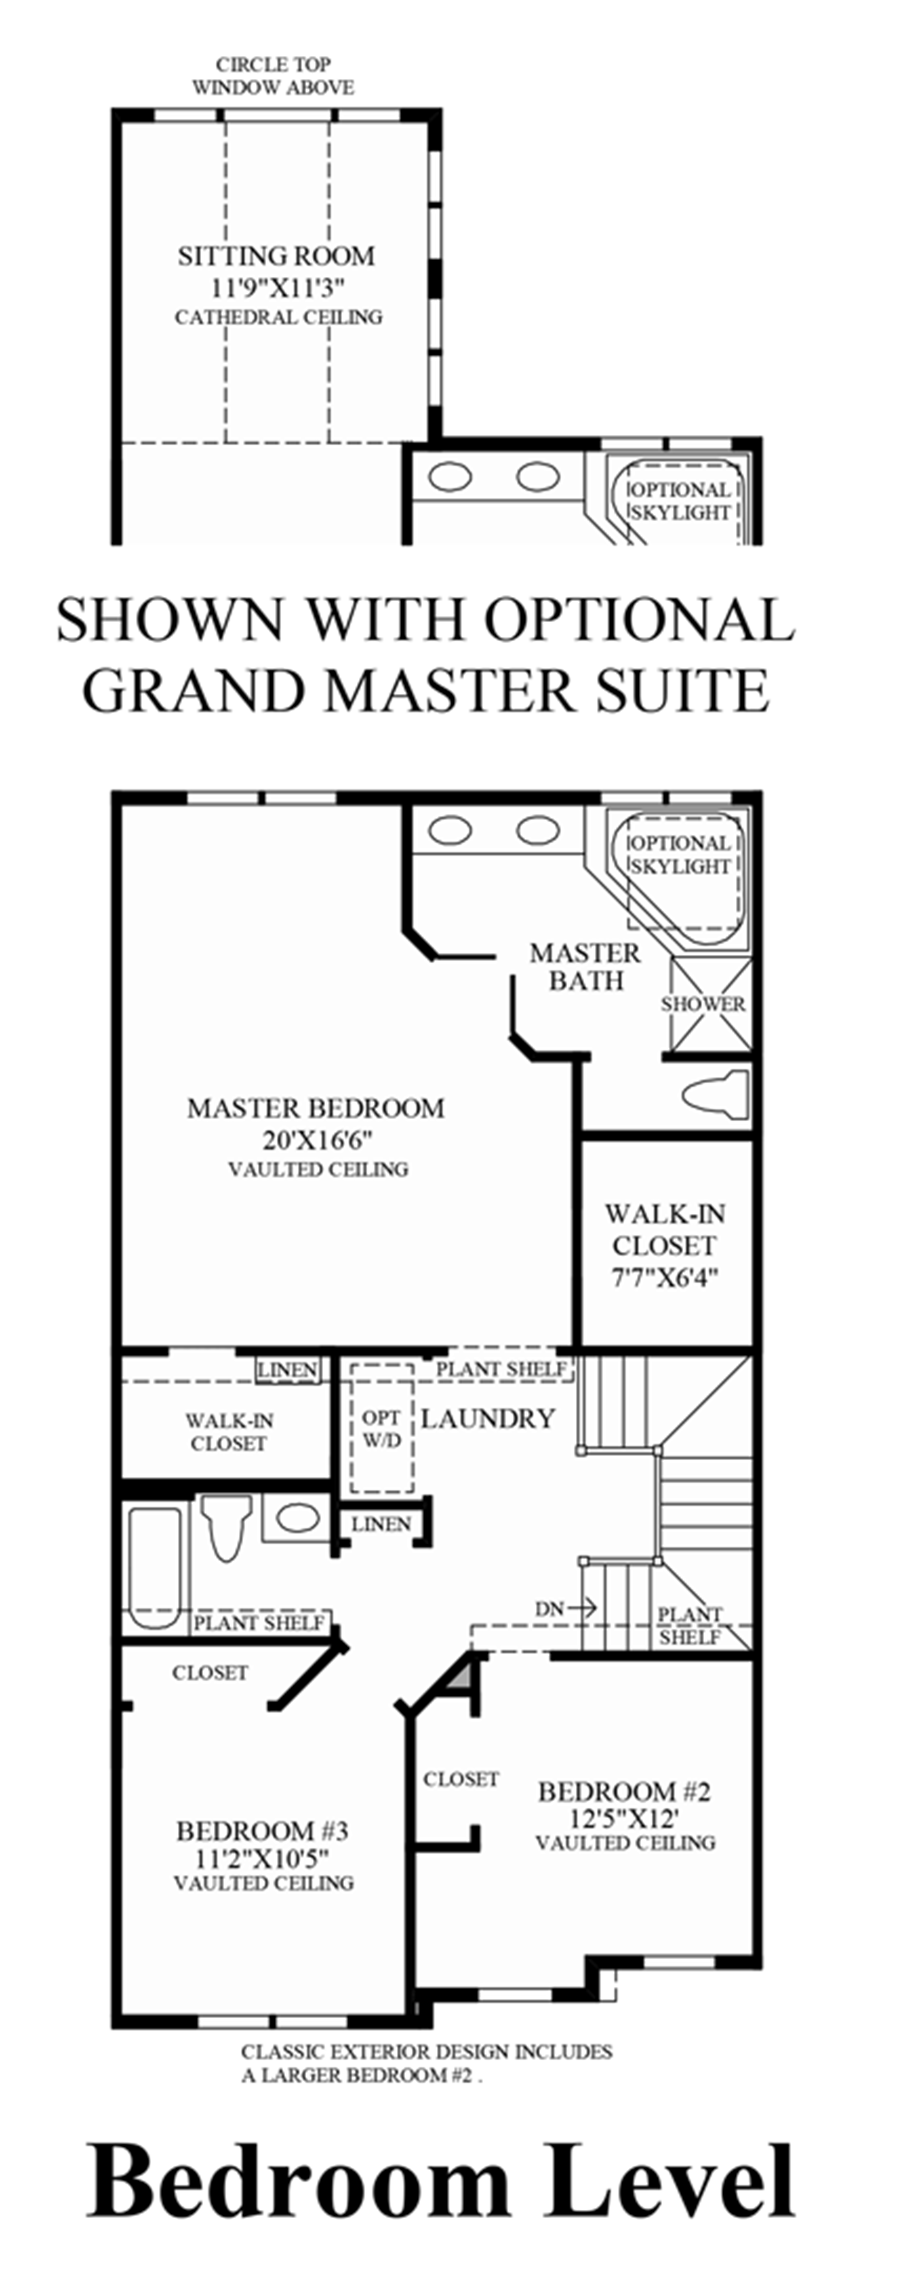 Bedroom Level (Lower Level Entry) Floor Plan